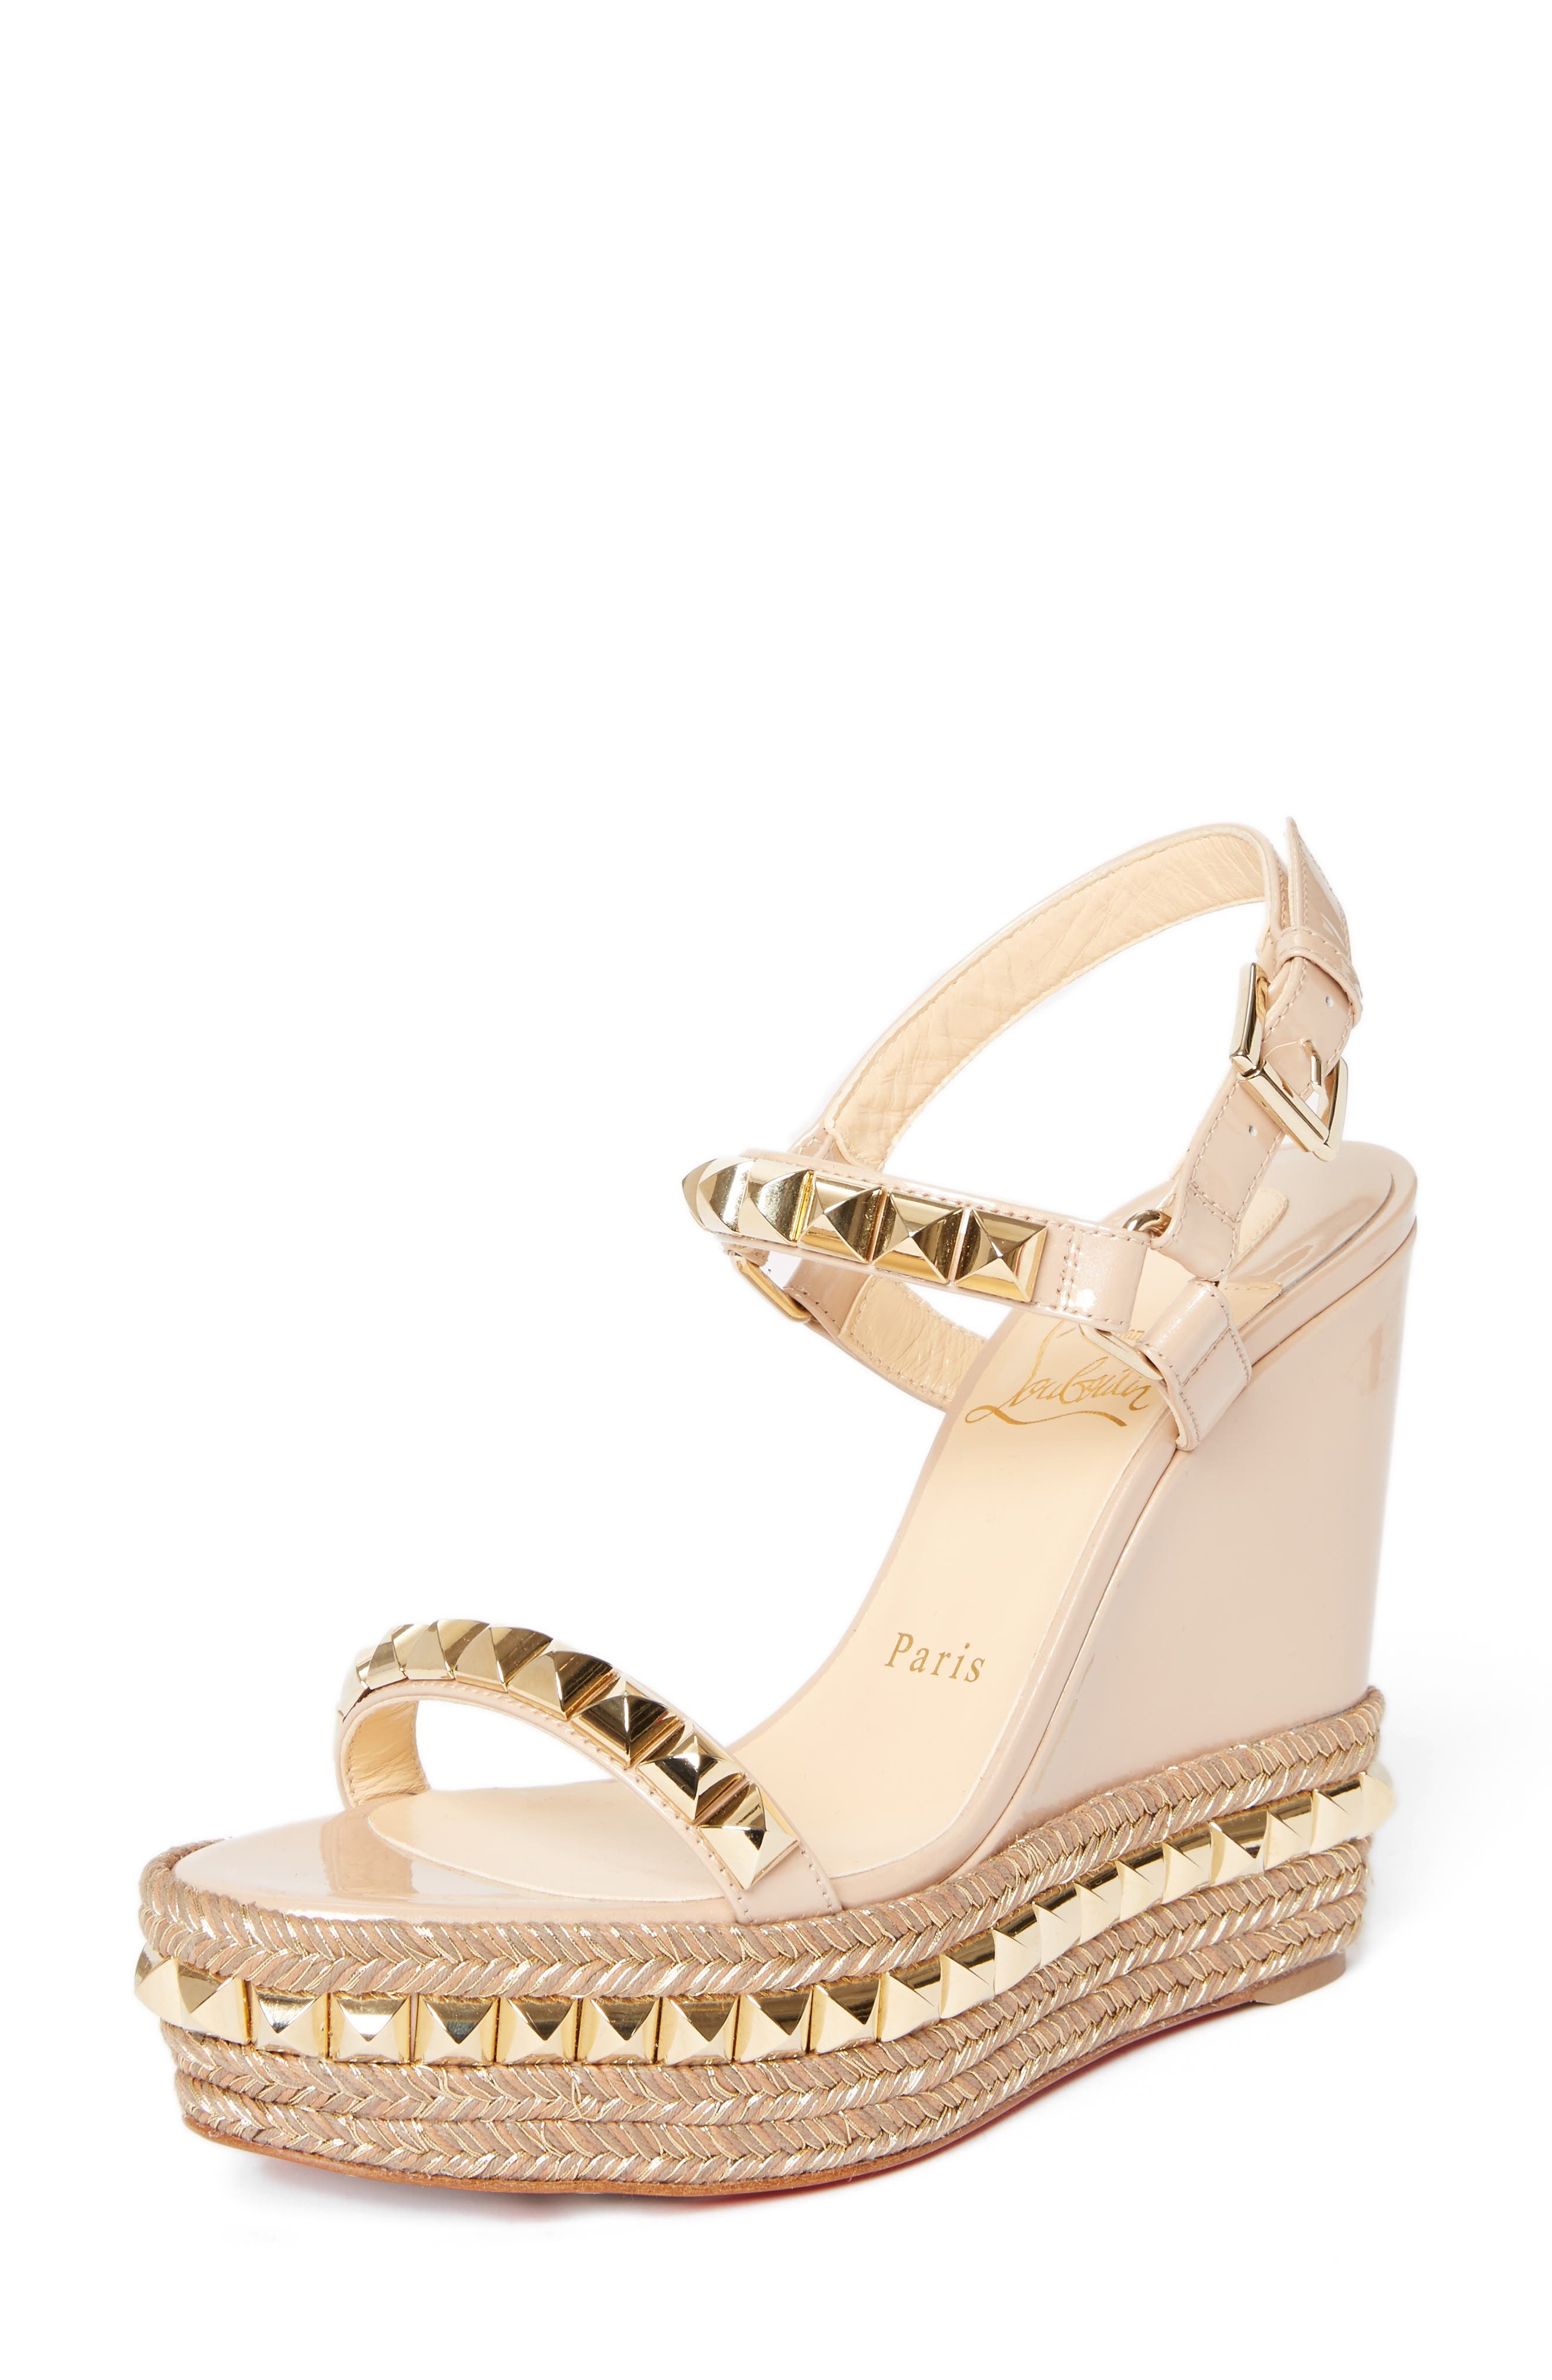 Alternate Image 1 Selected - Christian Louboutin Cataclou Espadrille Wedge Sandal (Women)